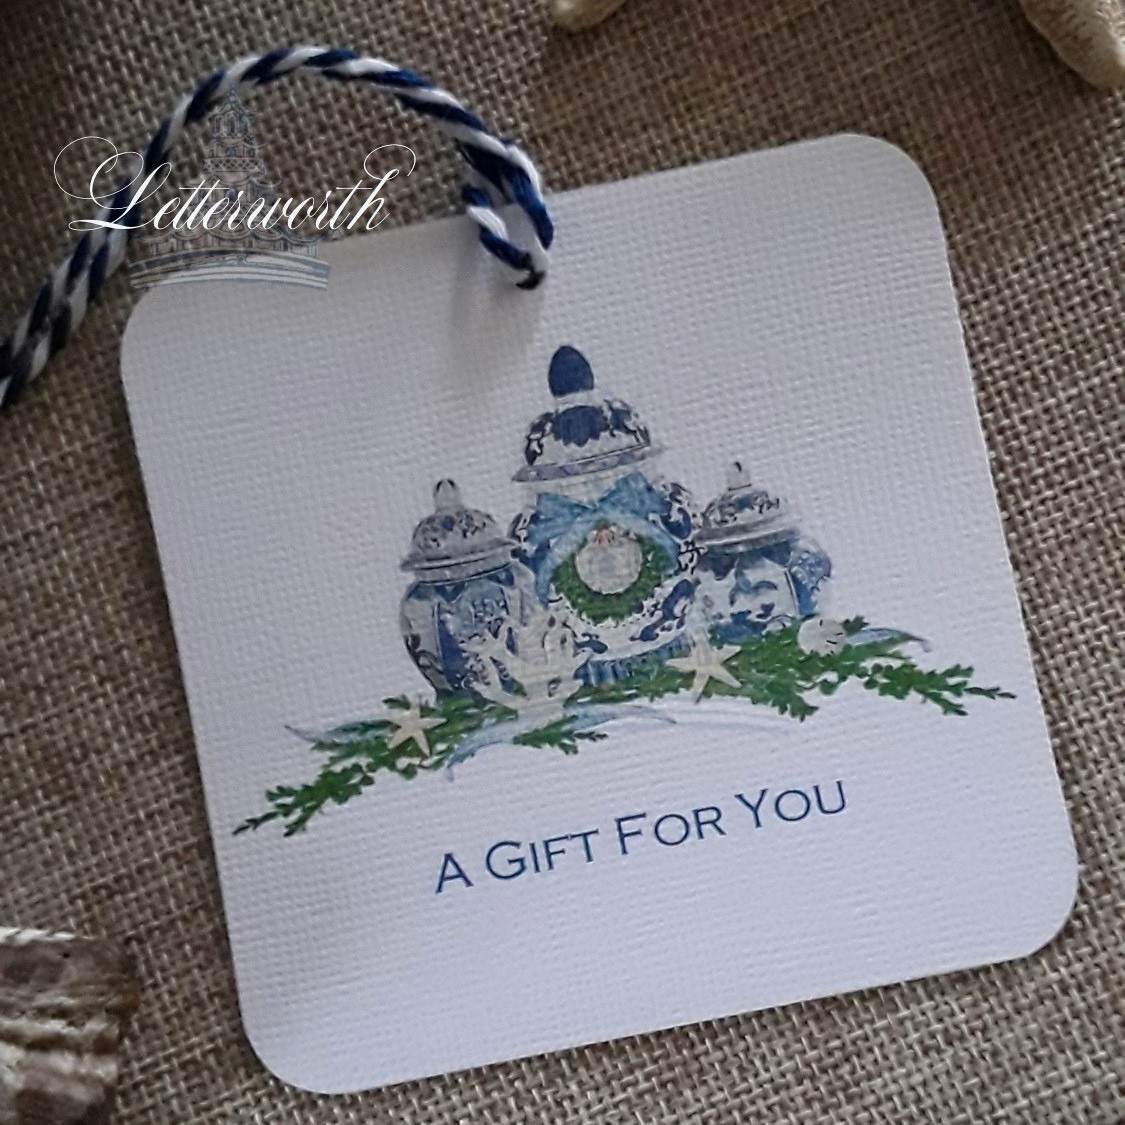 Coastal Ginger Jar Watercolor Gift Tags by Letterworth (Set of 12)